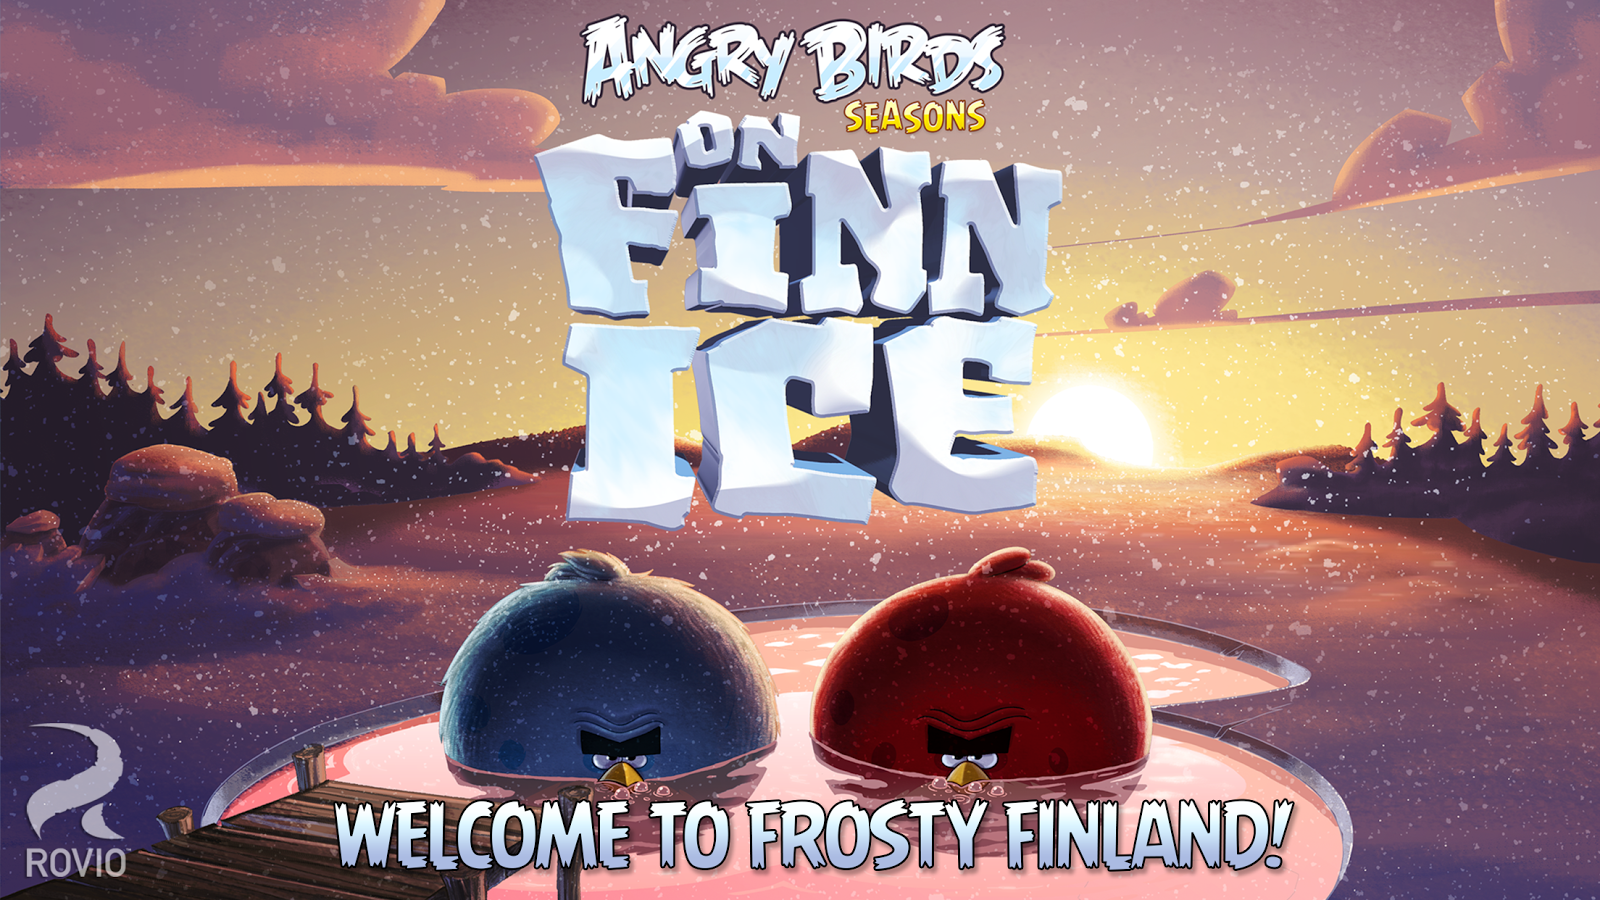 android games: Angry Birds Seasons 4.3.3 MOD APK (Unlimited Items)